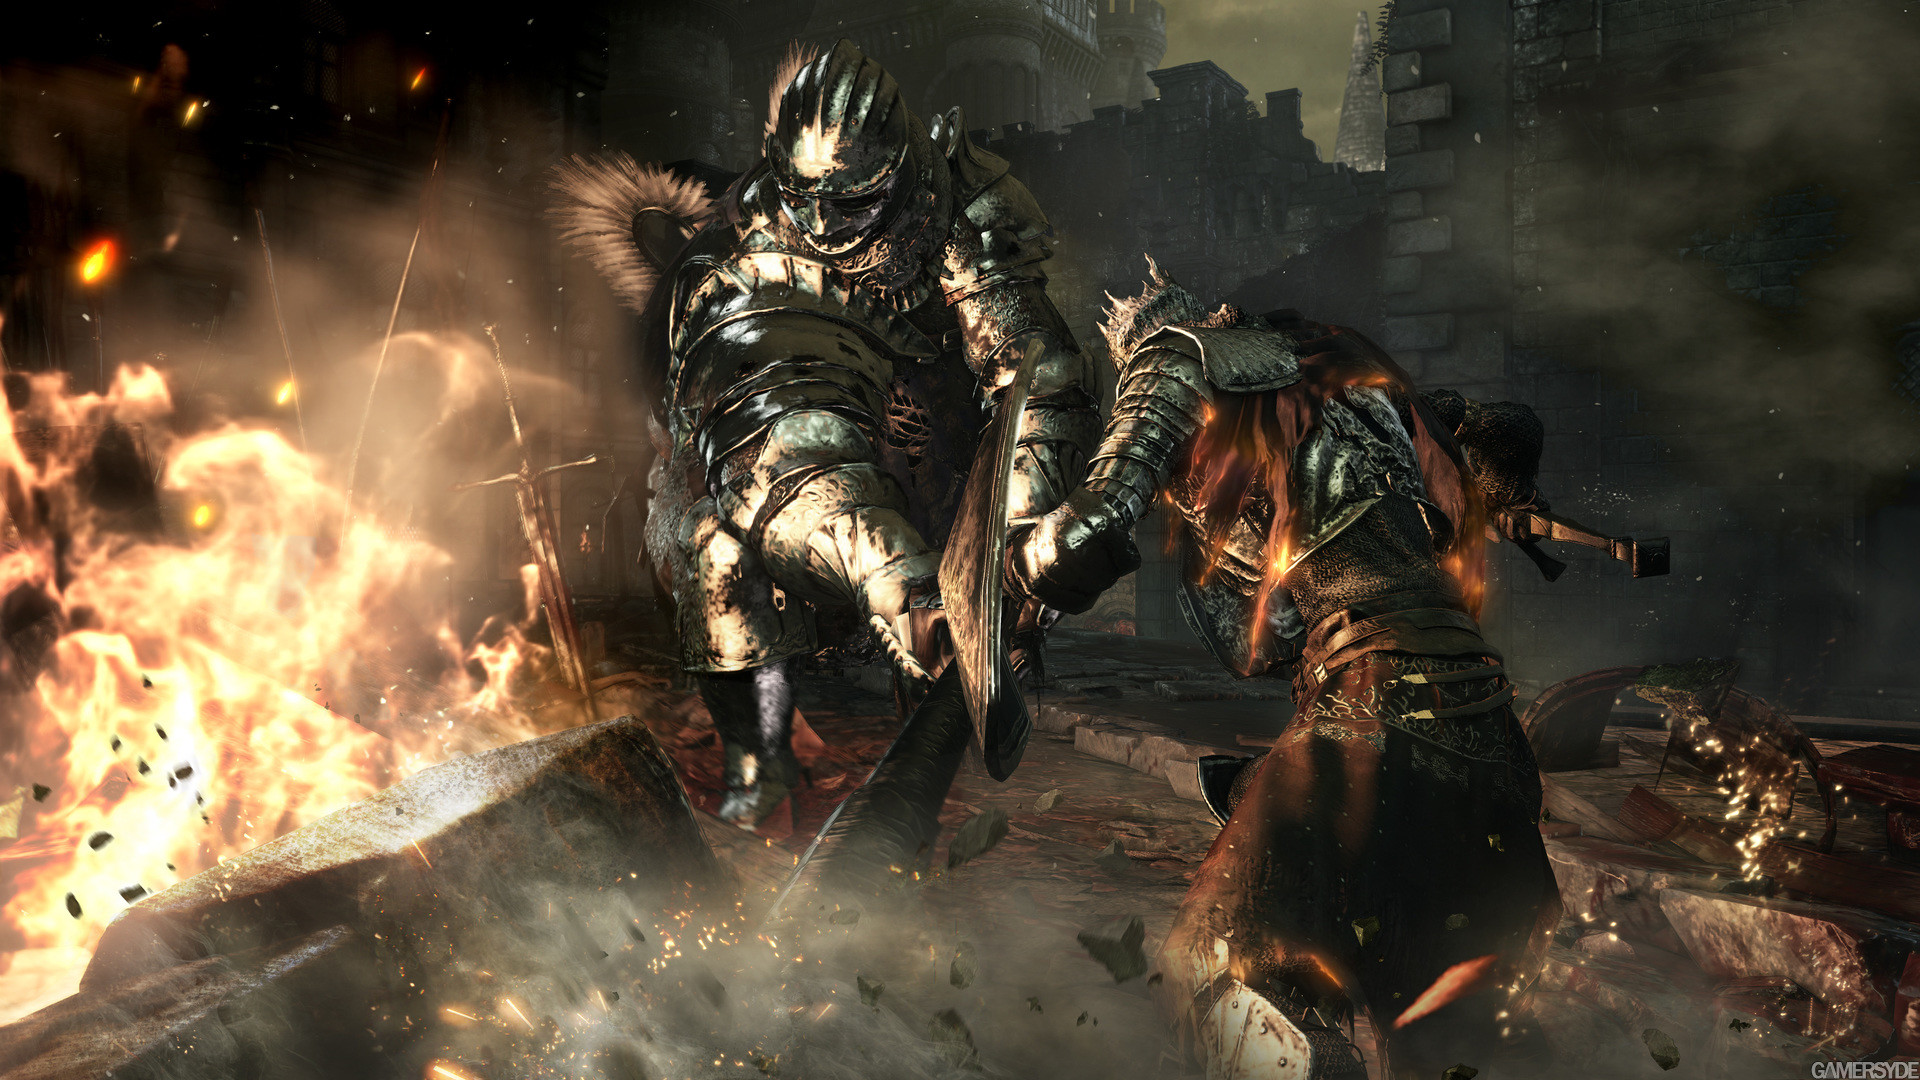 1920x1080 Dark Souls 3 Screenshoot HD Wallpaper